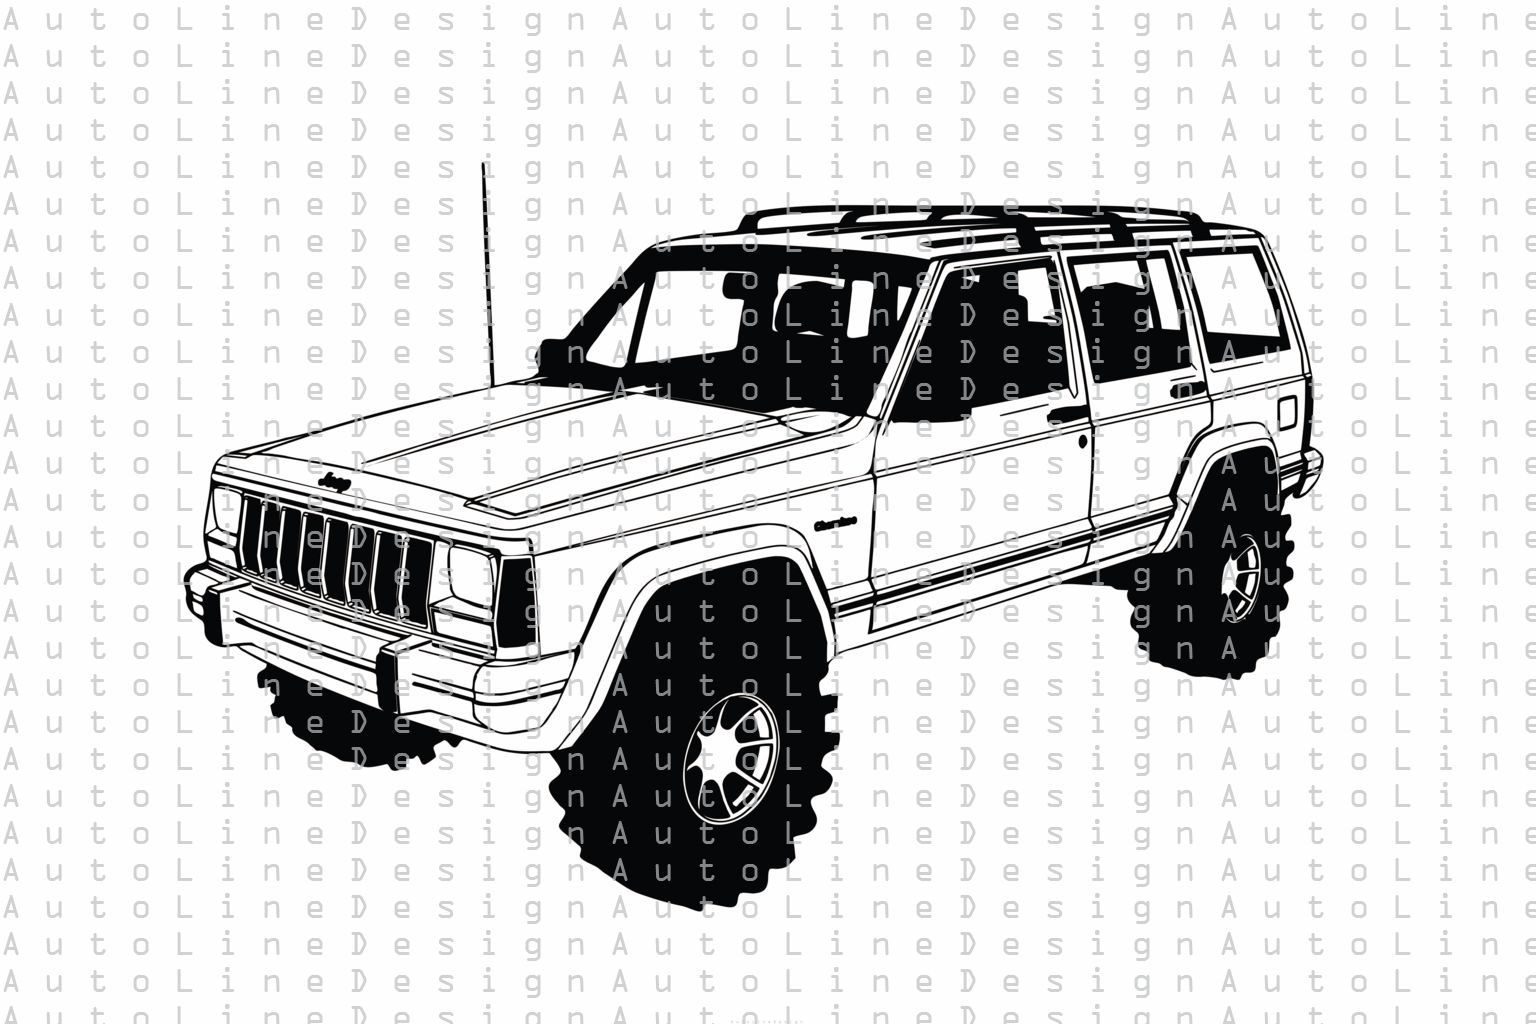 Jeep Cherokee Xj Offroad 4x4 Lifted Svg Pdf Dxf Eps Png Etsy In 2021 Jeep Cherokee Jeep Car Vector